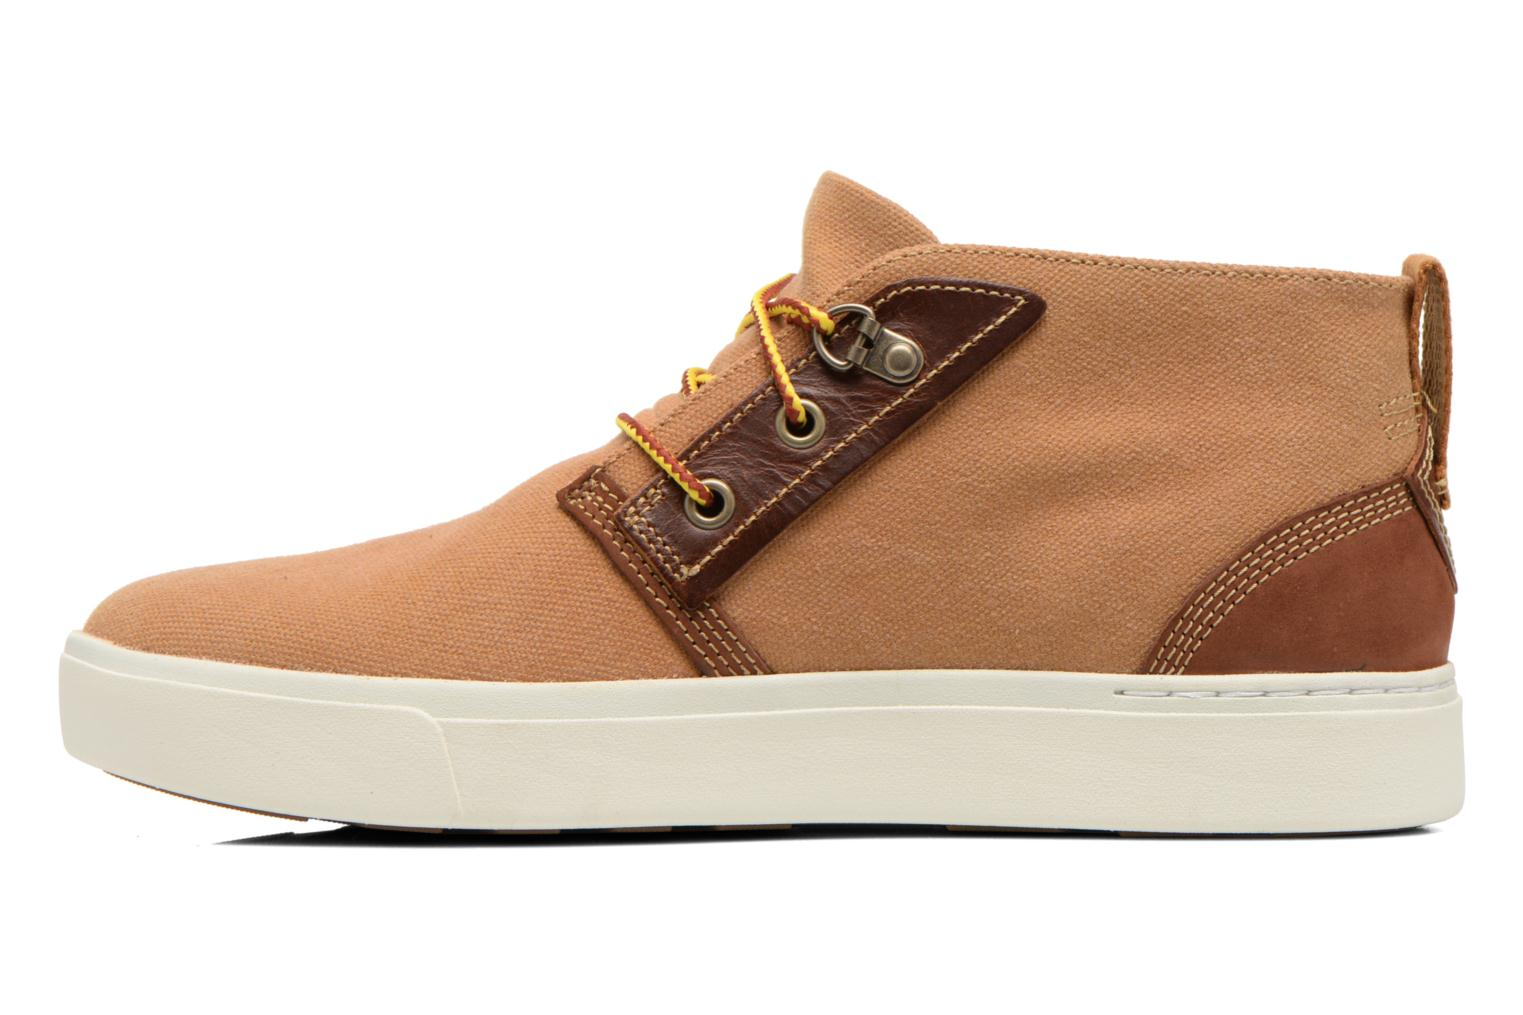 Chaussures à lacets Timberland Amherst Chukka Marron vue face